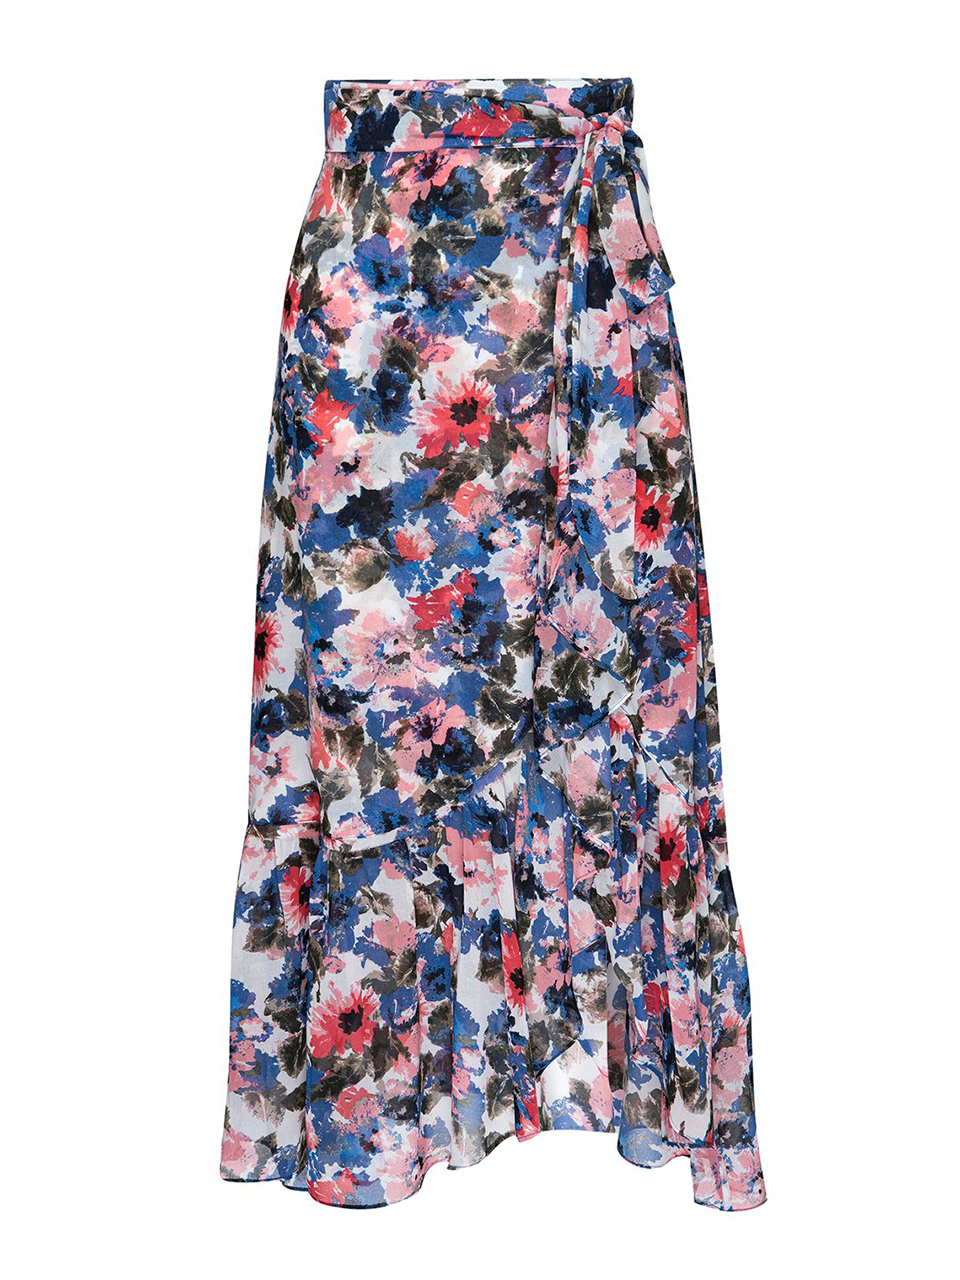 MISA Themis Skirt in Floral